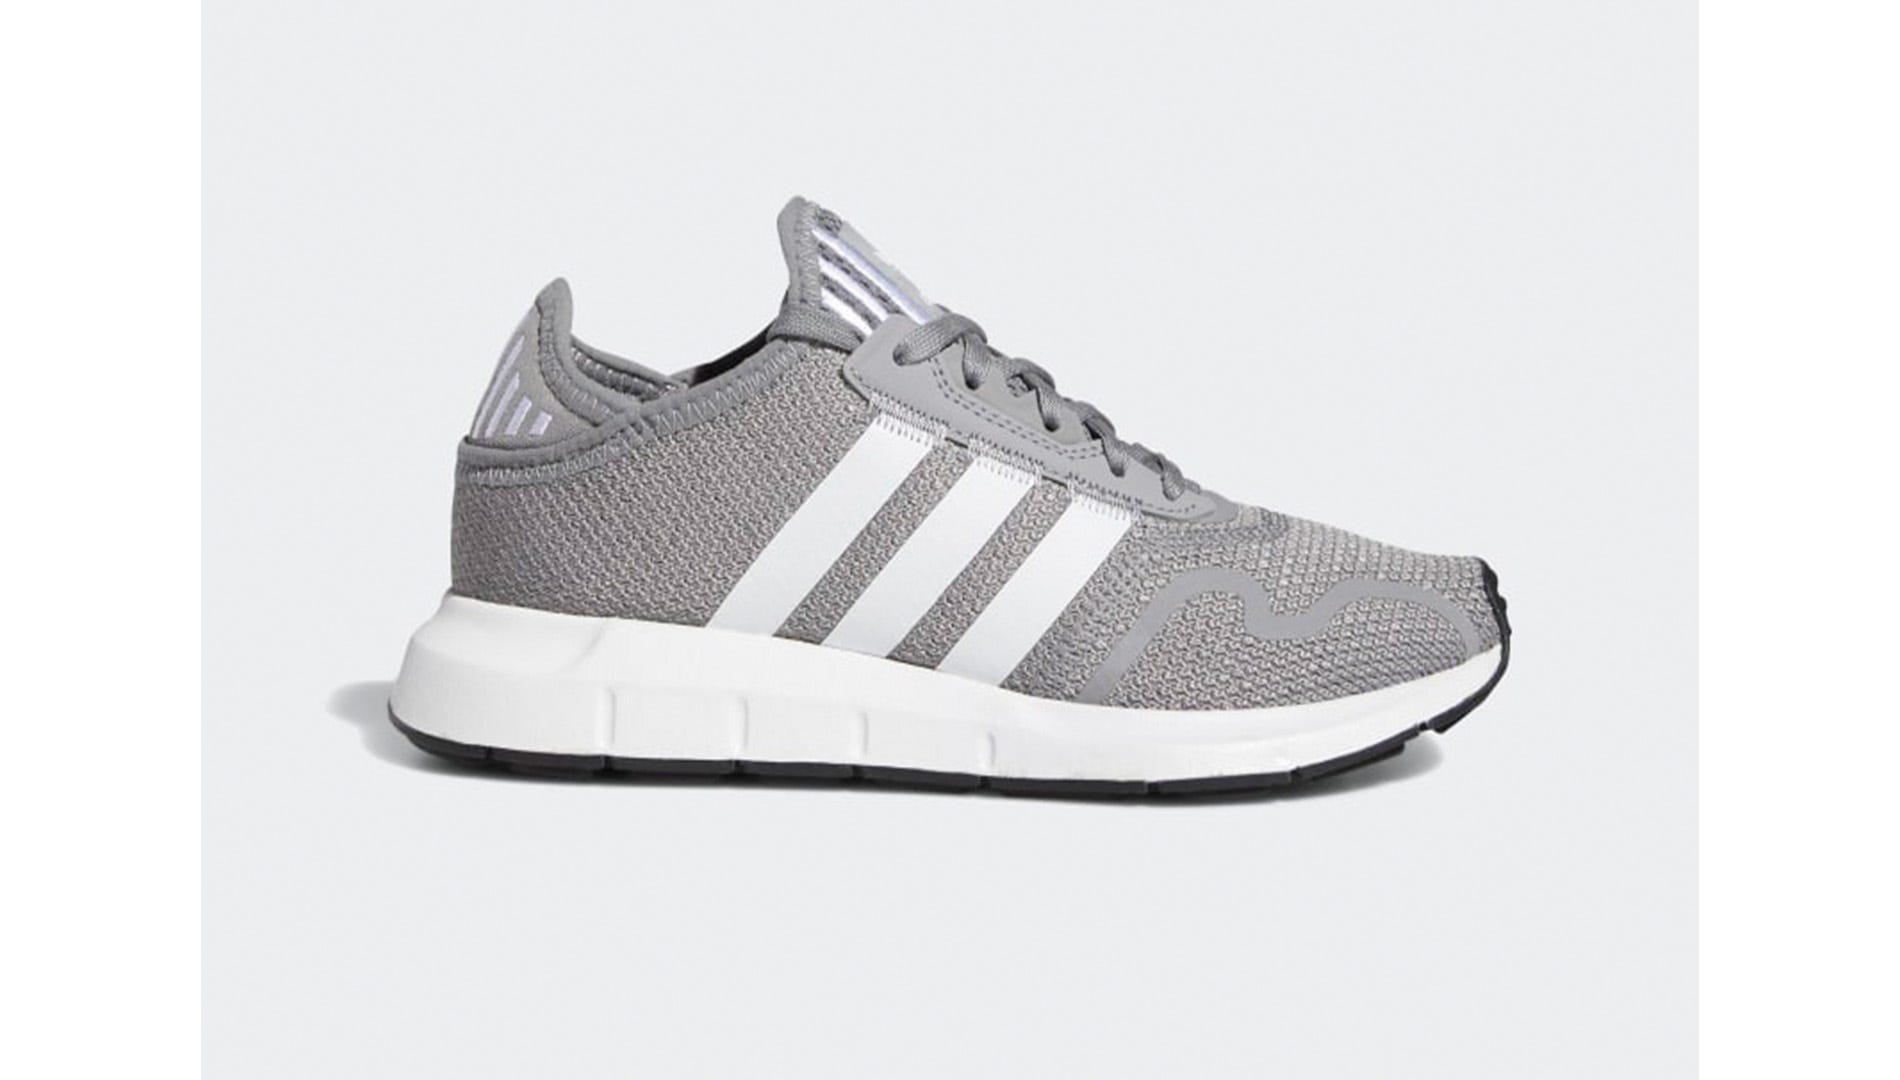 adidas shoes: Get 30% off select sneakers right now